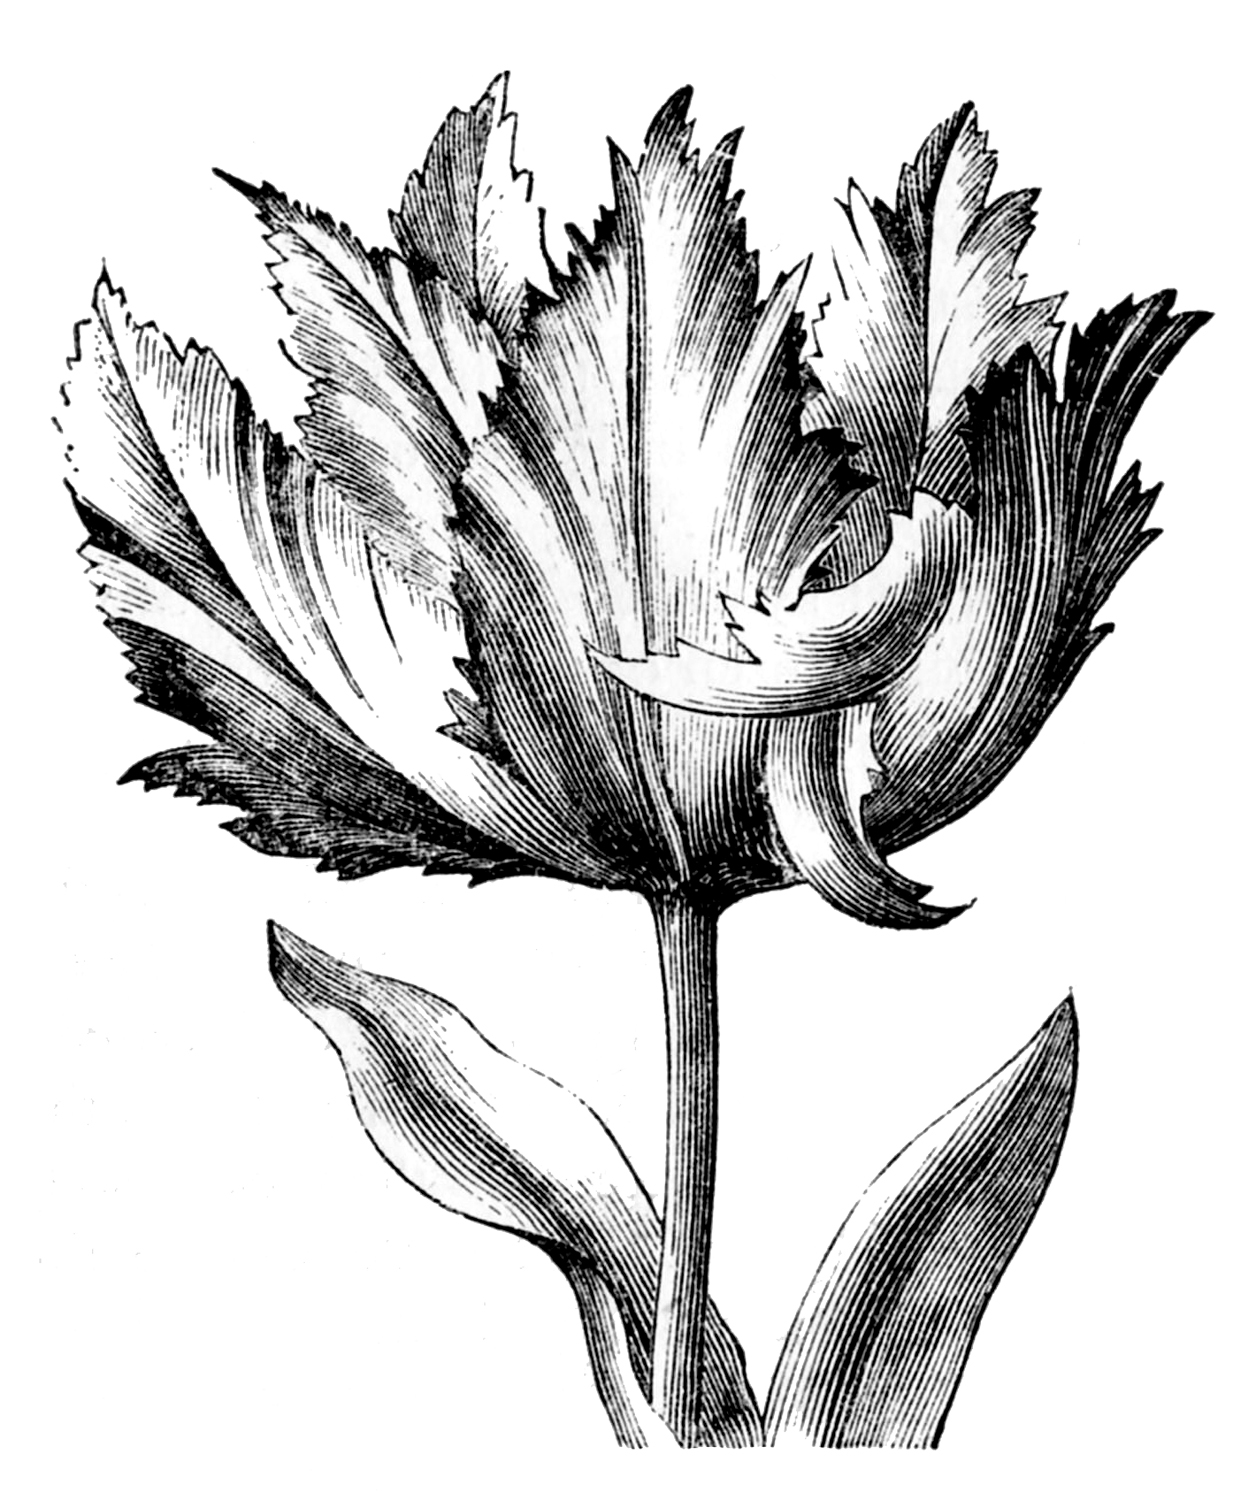 drawings of tulips tulip flower graphic black white isolated sketch of tulips drawings